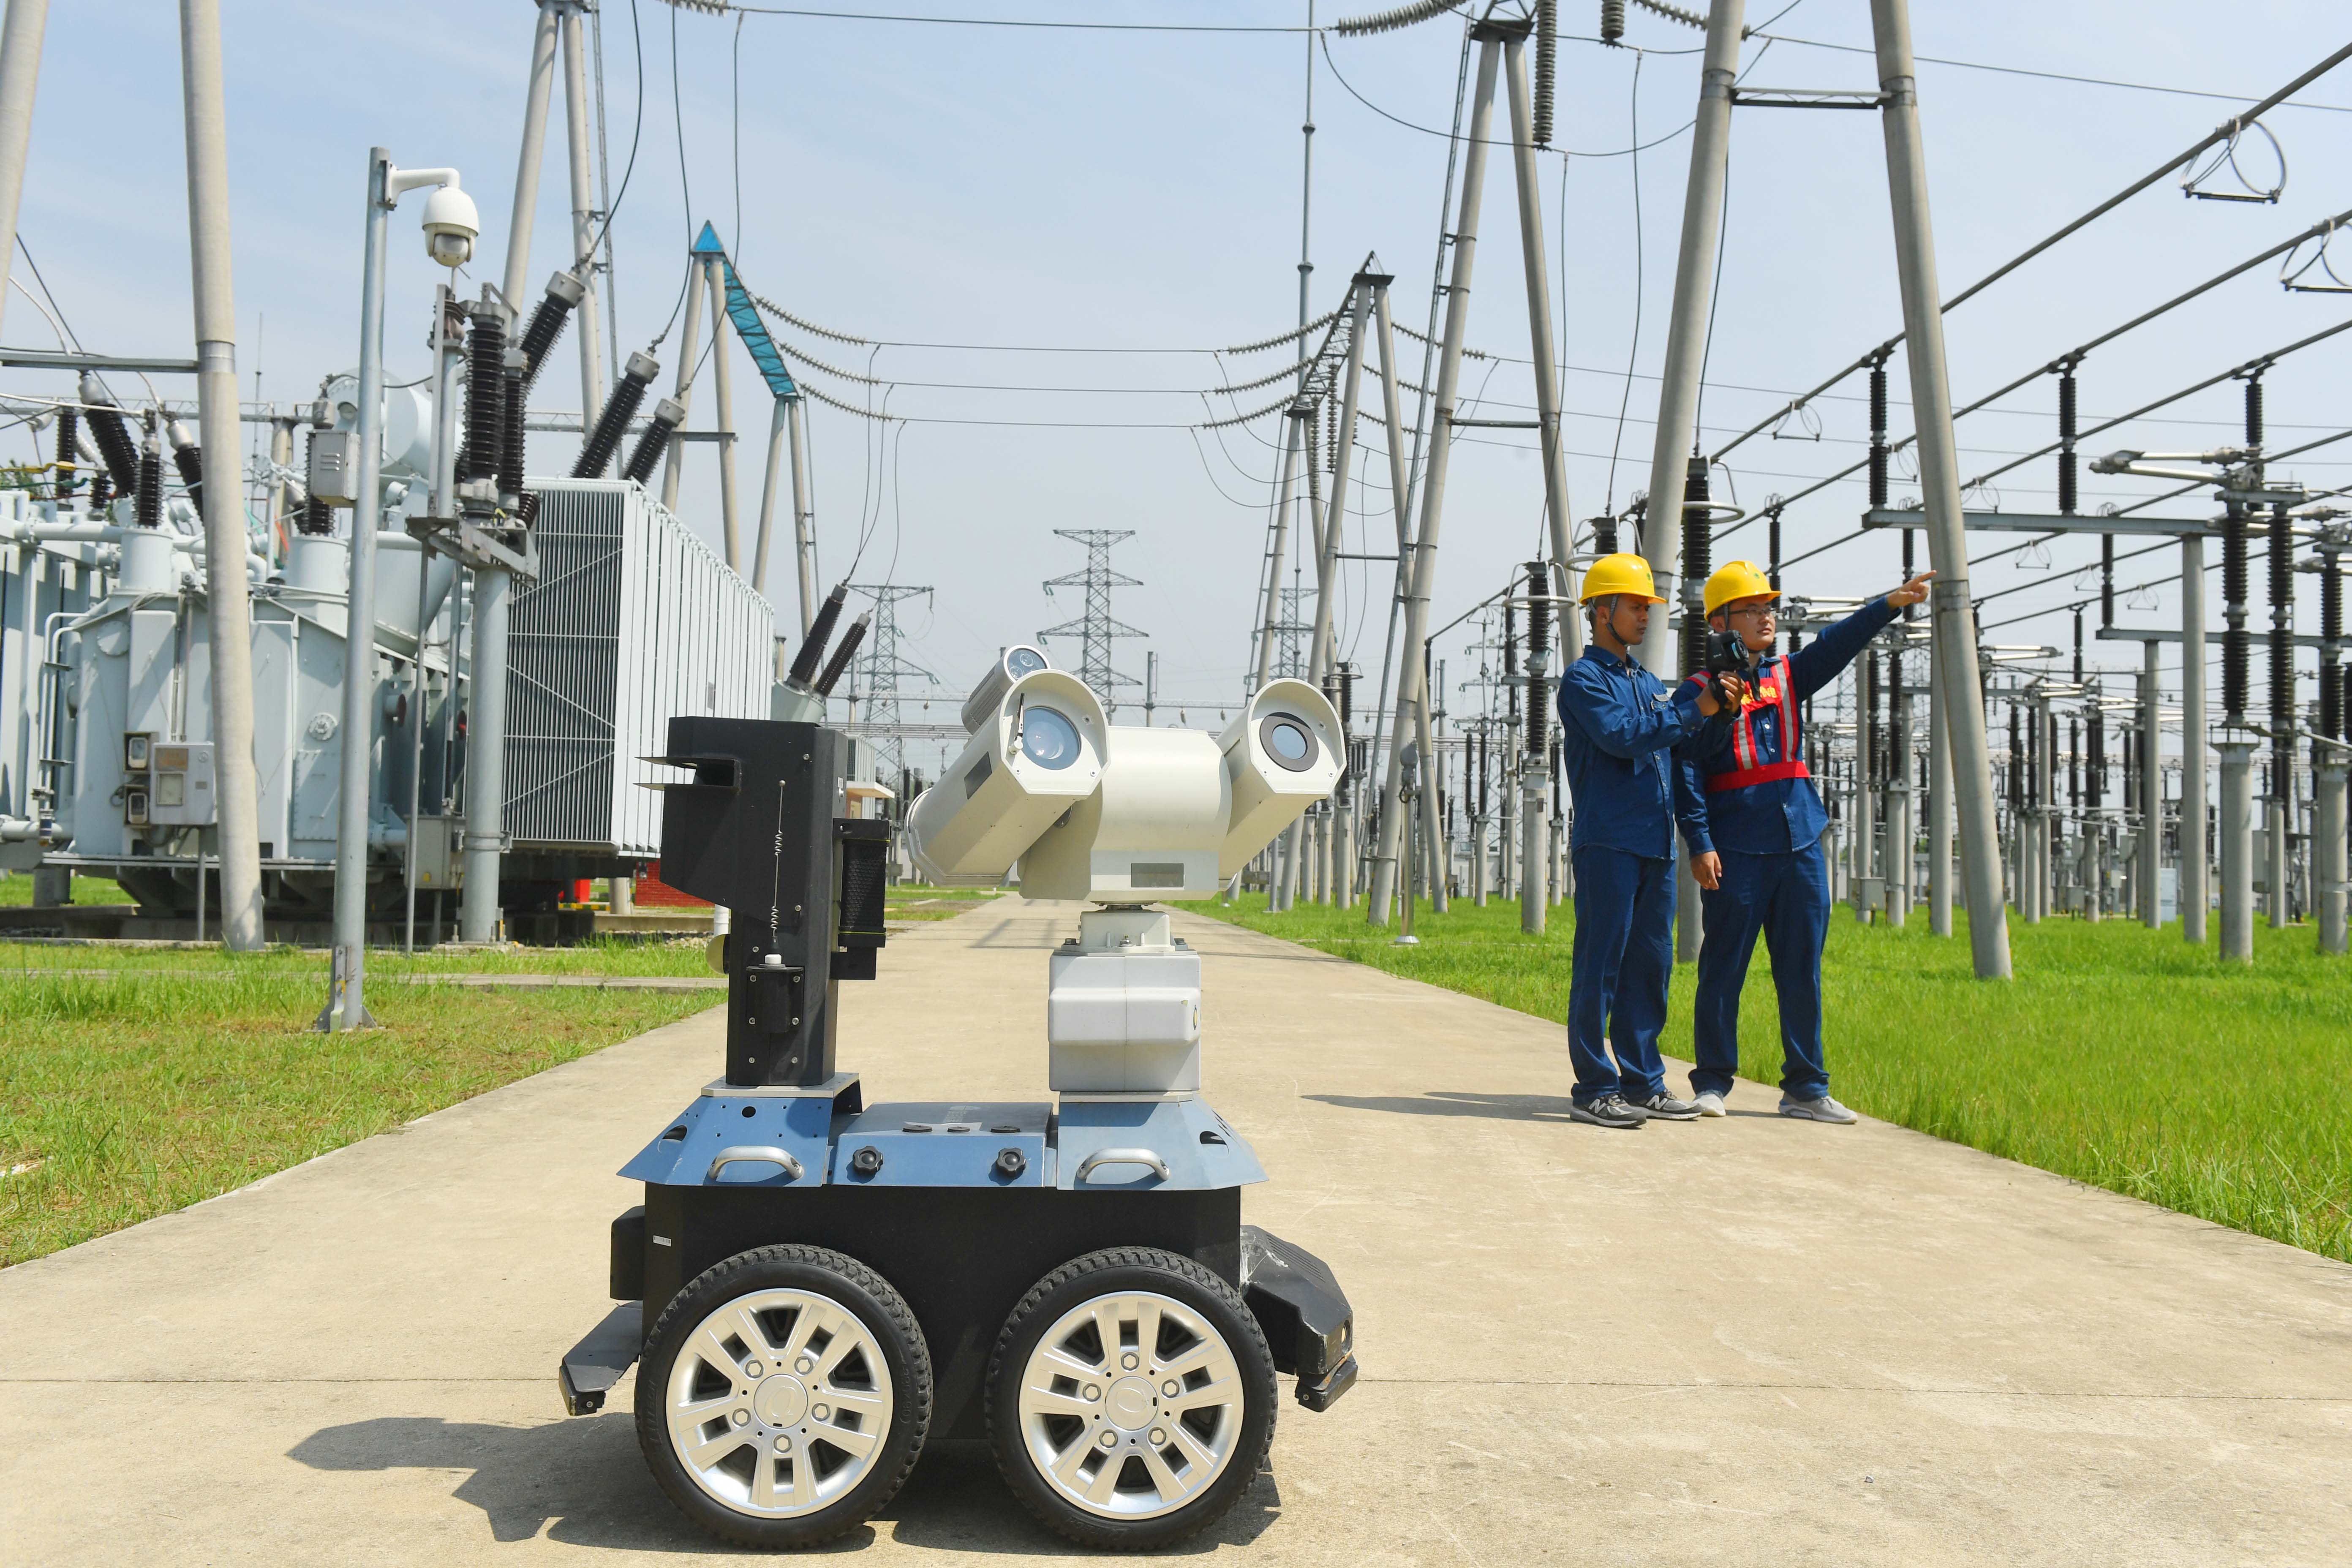 Two people in hard hats stand outside an electrical substation power facility behind a rolling robotic sensor.